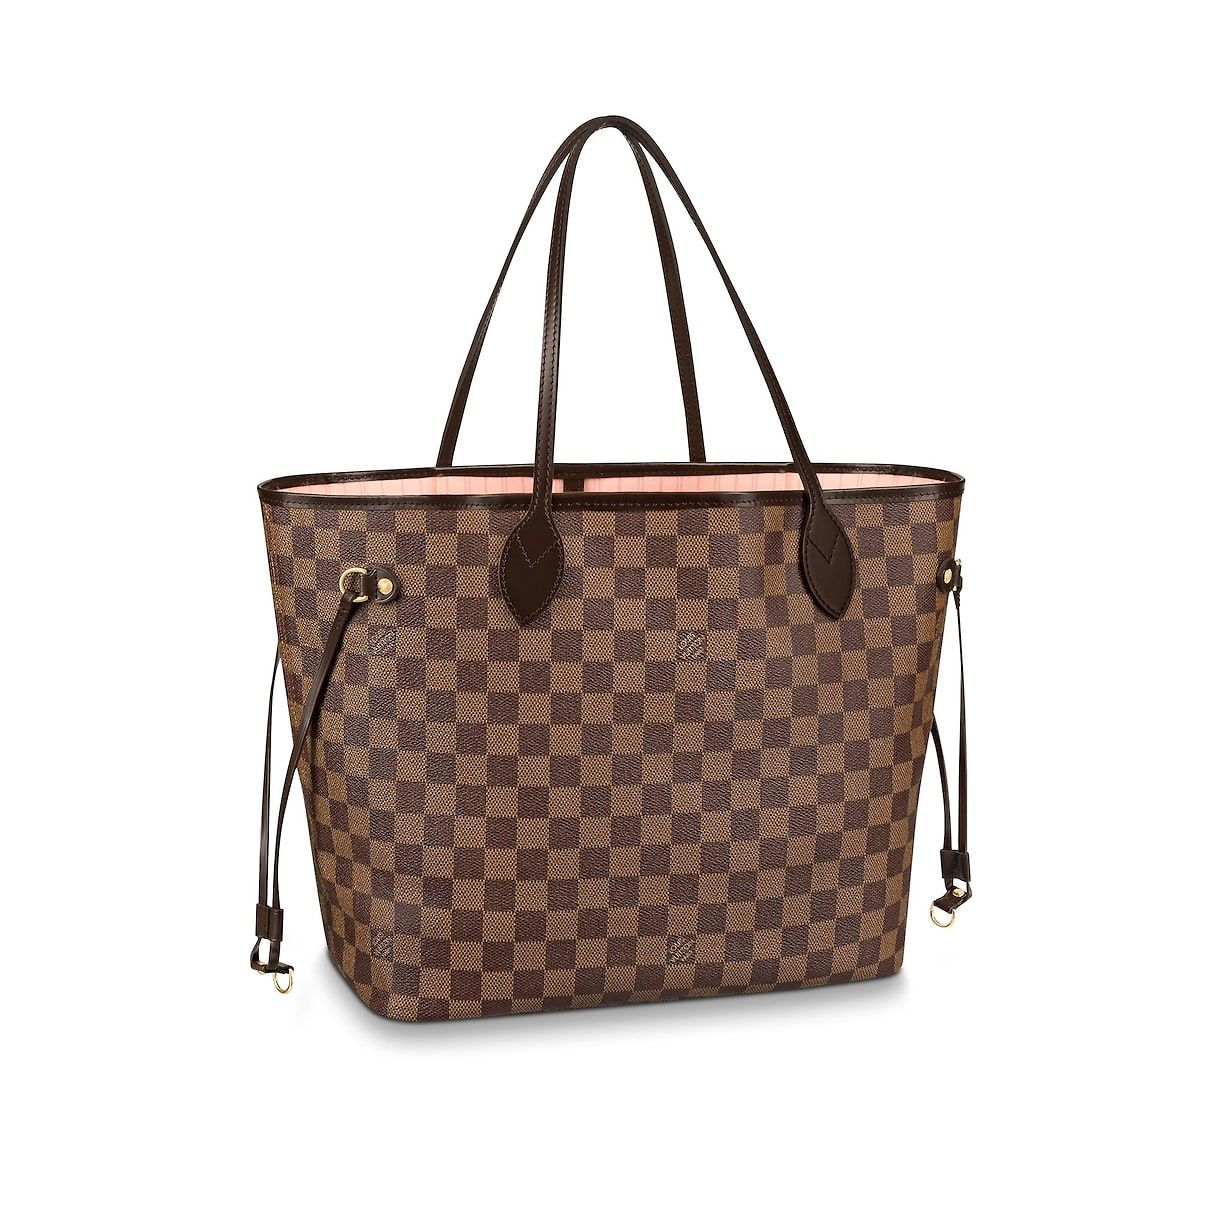 c65ac9fa3dd2 View 1 - Neverfull MM Damier Ebene Canvas in Women s Handbags Business Bags  collections by Louis